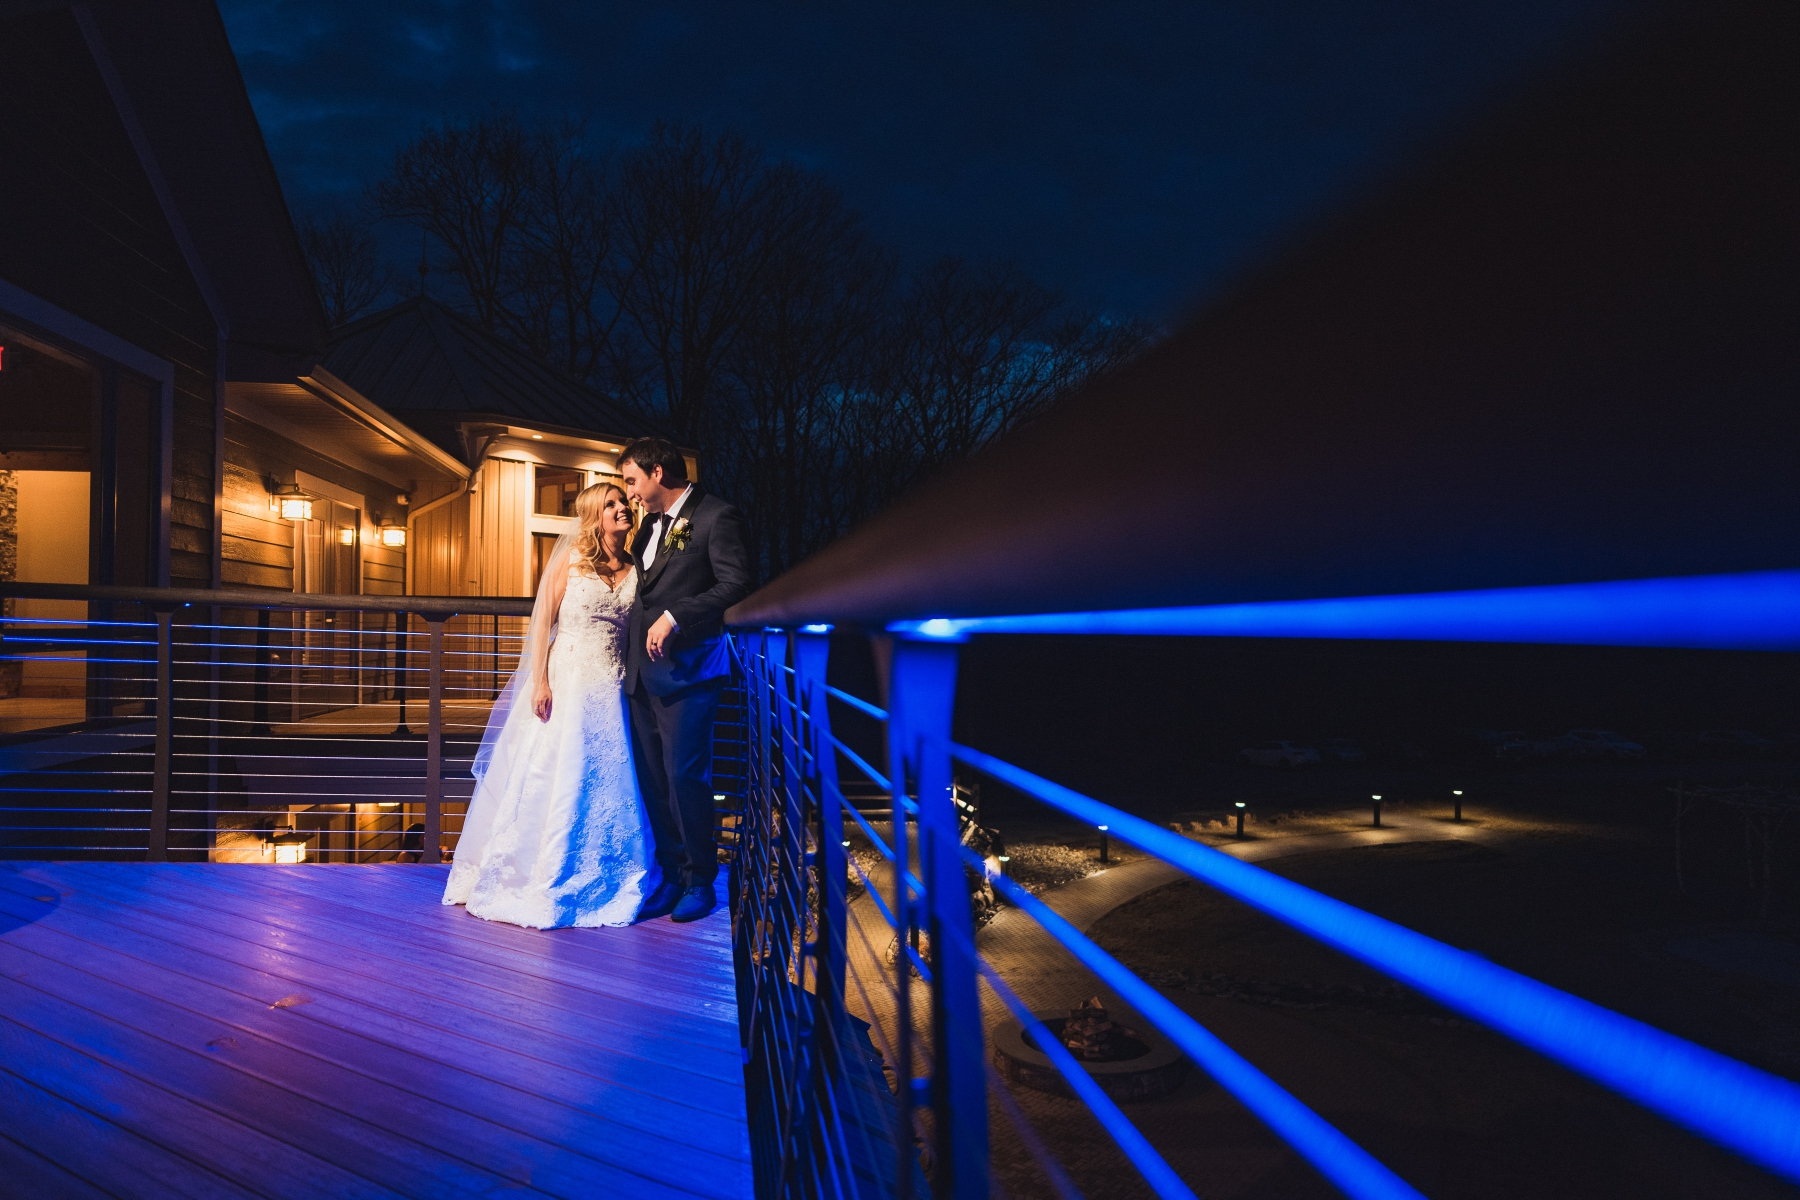 Nearing the end of the night, i wanted to do one more night portrait of the two of them. Rock Island Lake Club has this really cool blue uplighting that they use on the patio, so i took them outside, incorporated them as leading lines into my image of the two of them, right before they're going to be announced as husband and wife.